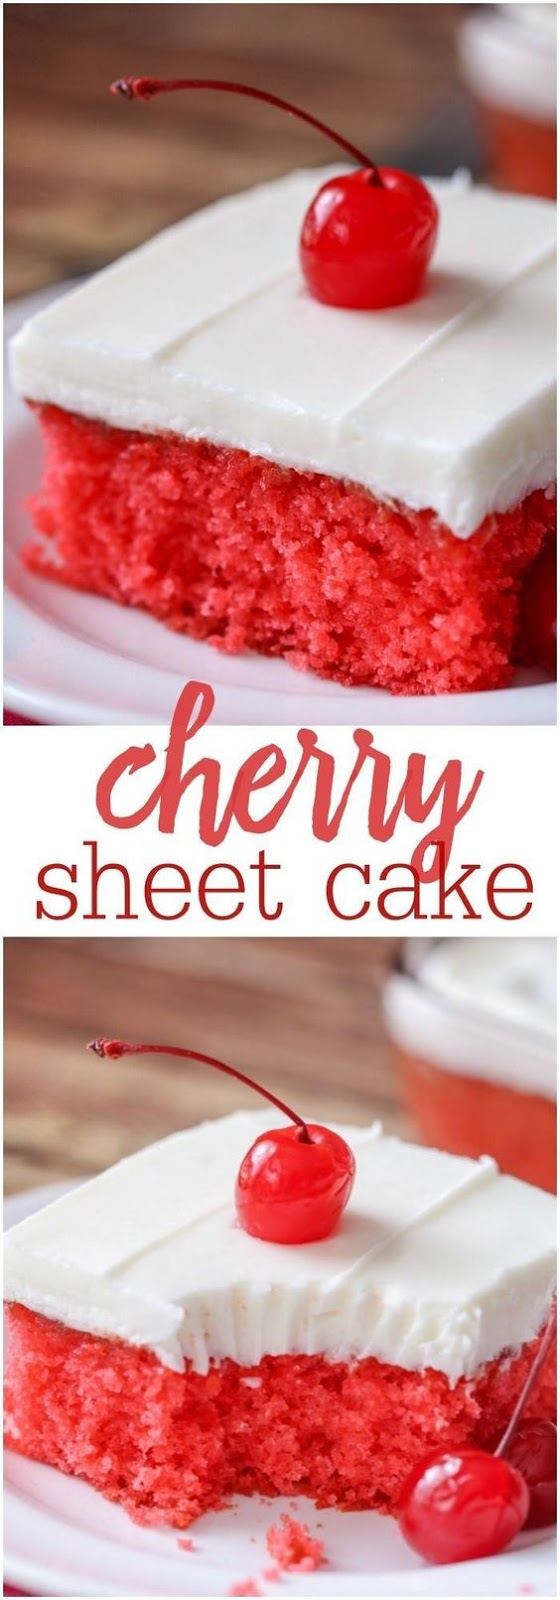 Cherry Sheet Cake Recipe